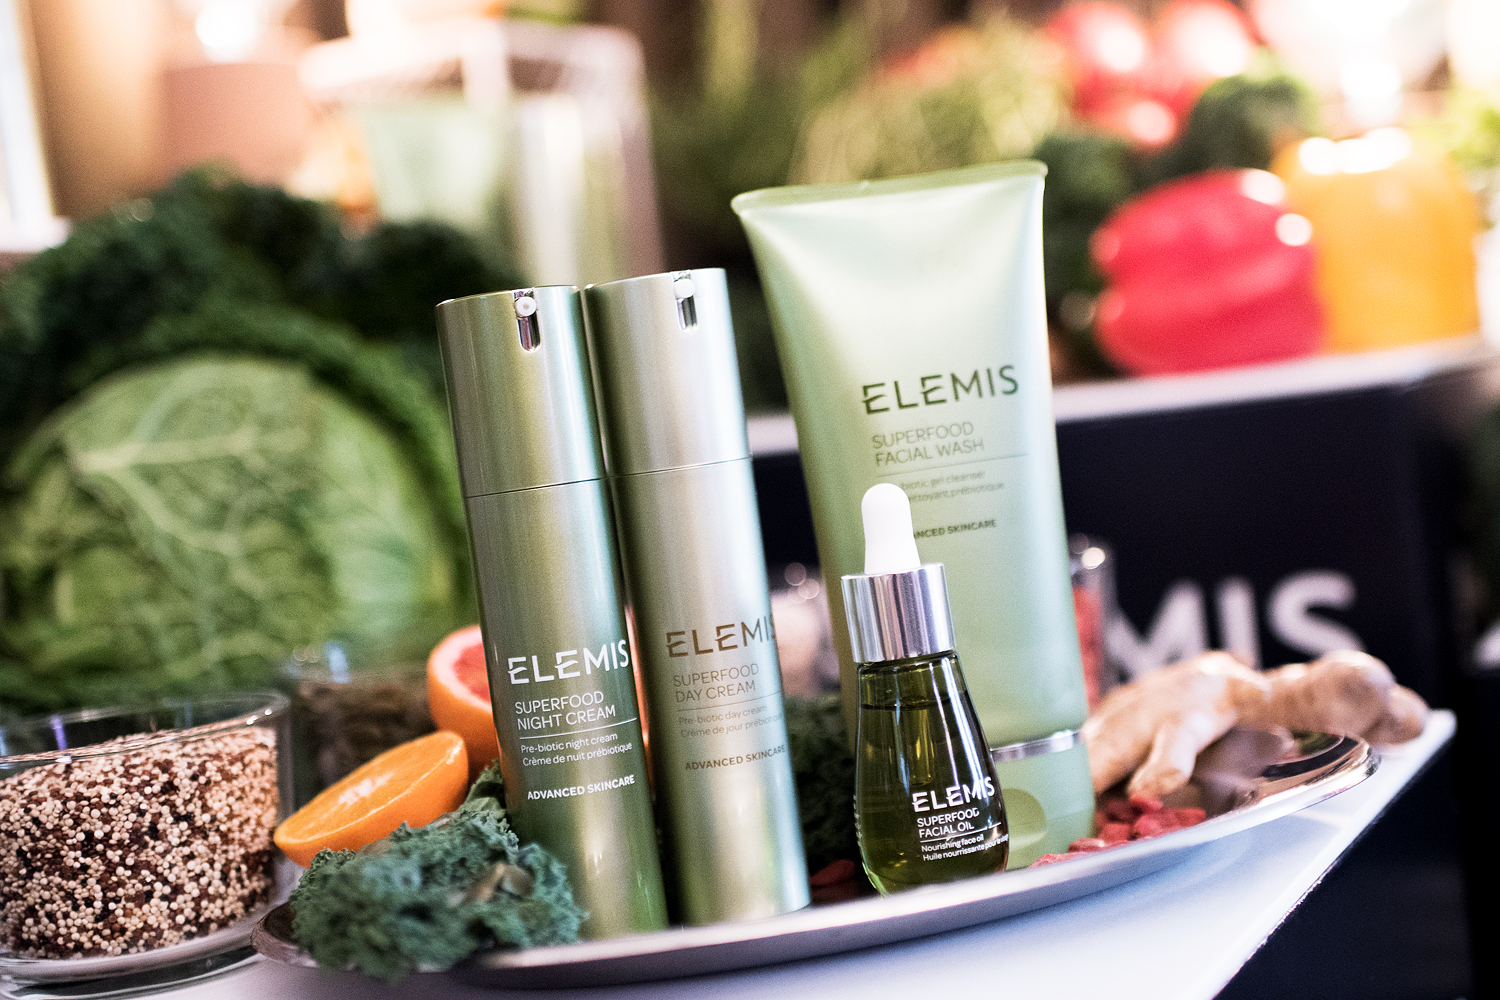 daisy beauty expo 2018 elemis superfood